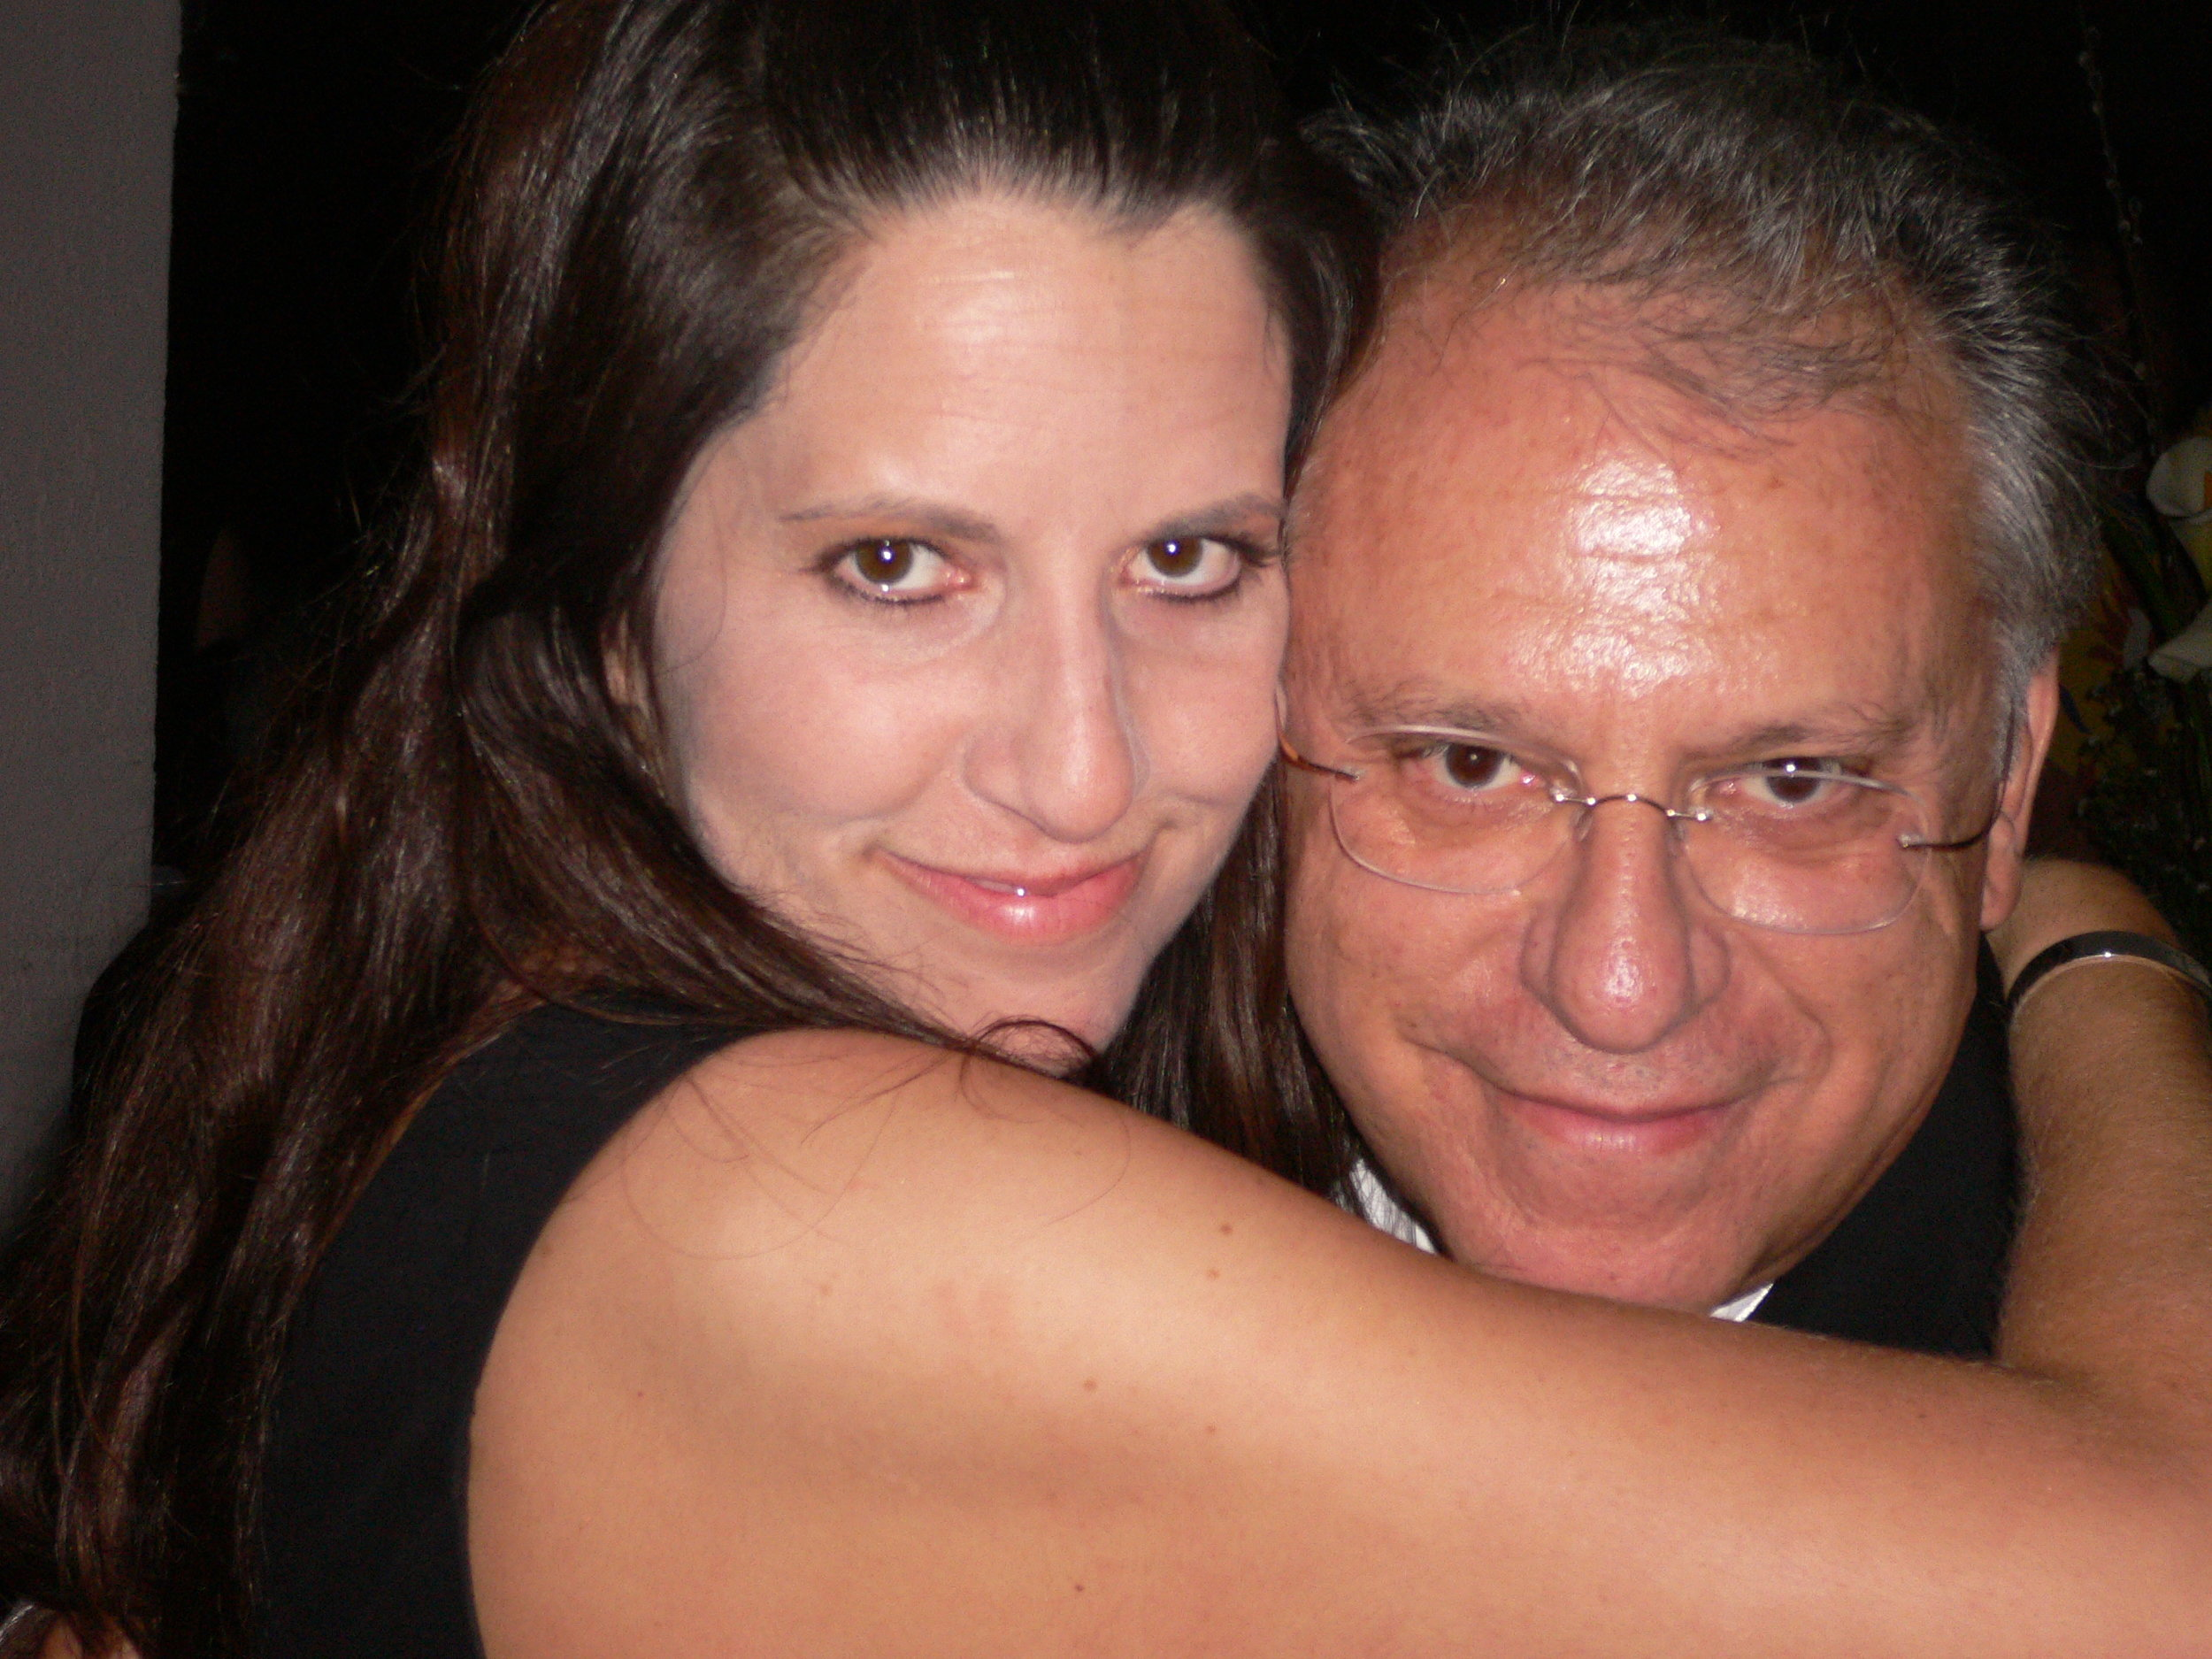 Daughter Susanna and Pepe